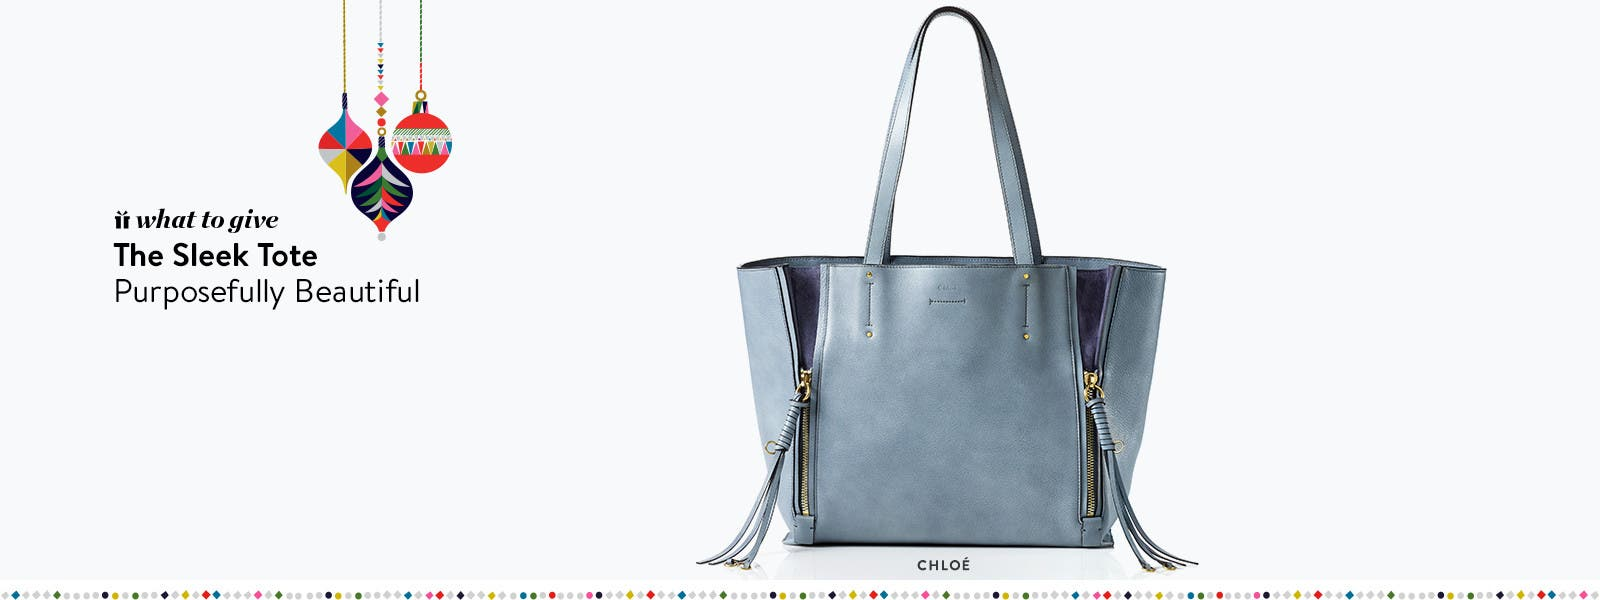 Designer holiday gifts: Chloe tote bag.